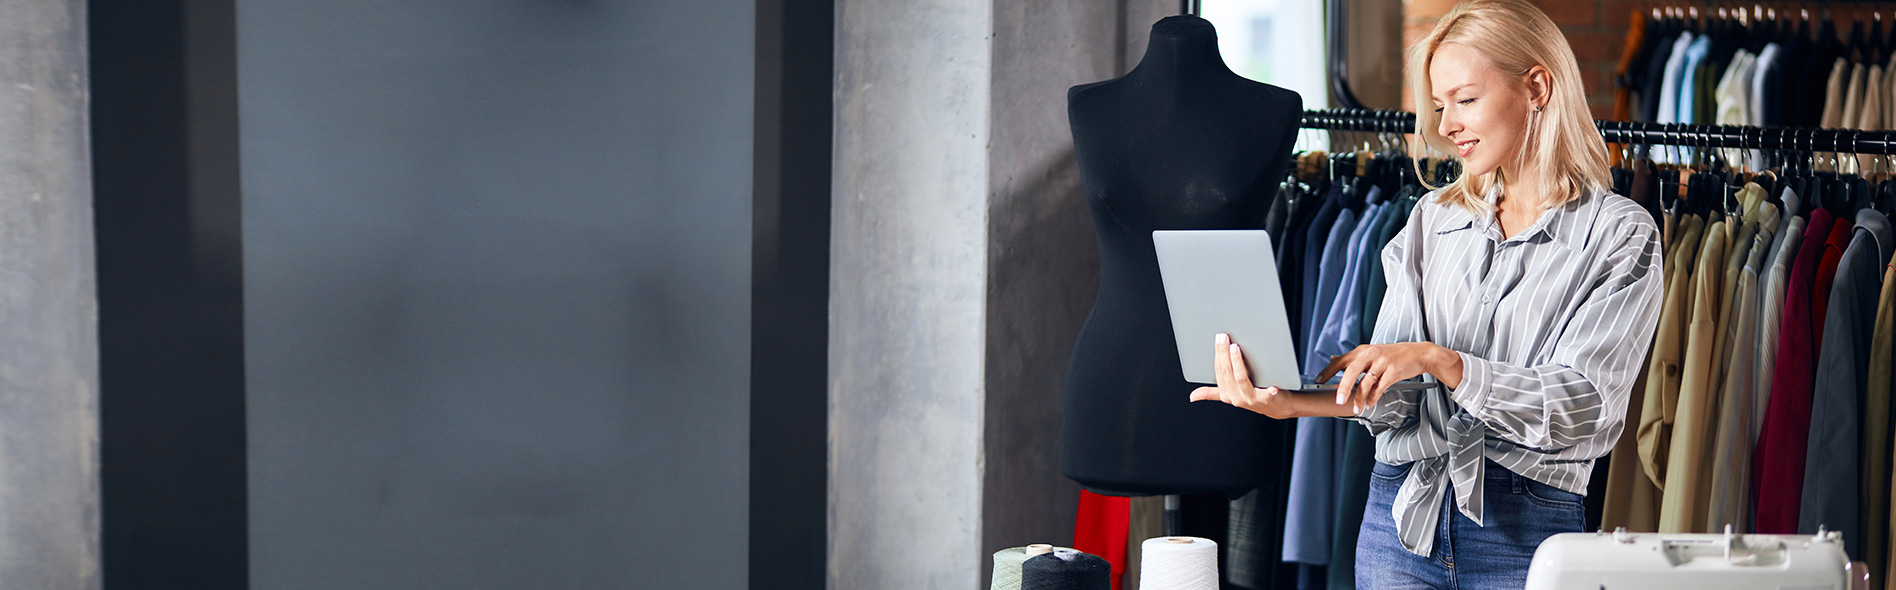 Connected Supply Chain Enhancements In Fashion Product Development Wipro